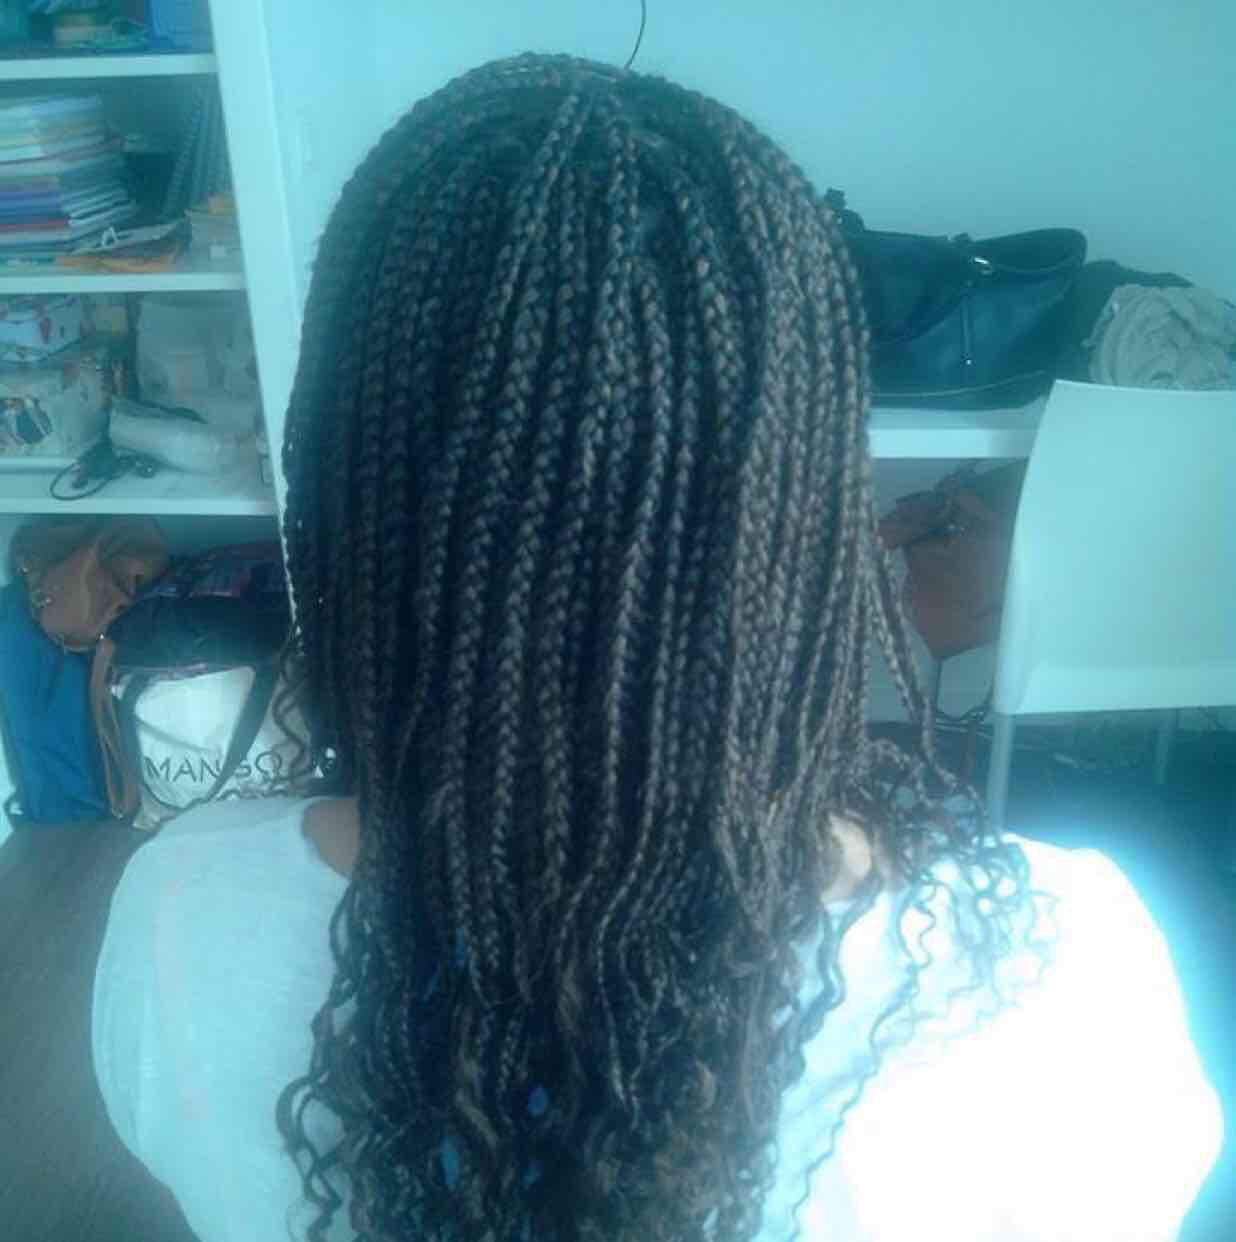 salon de coiffure afro tresse tresses box braids crochet braids vanilles tissages paris 75 77 78 91 92 93 94 95 RQETWCFW